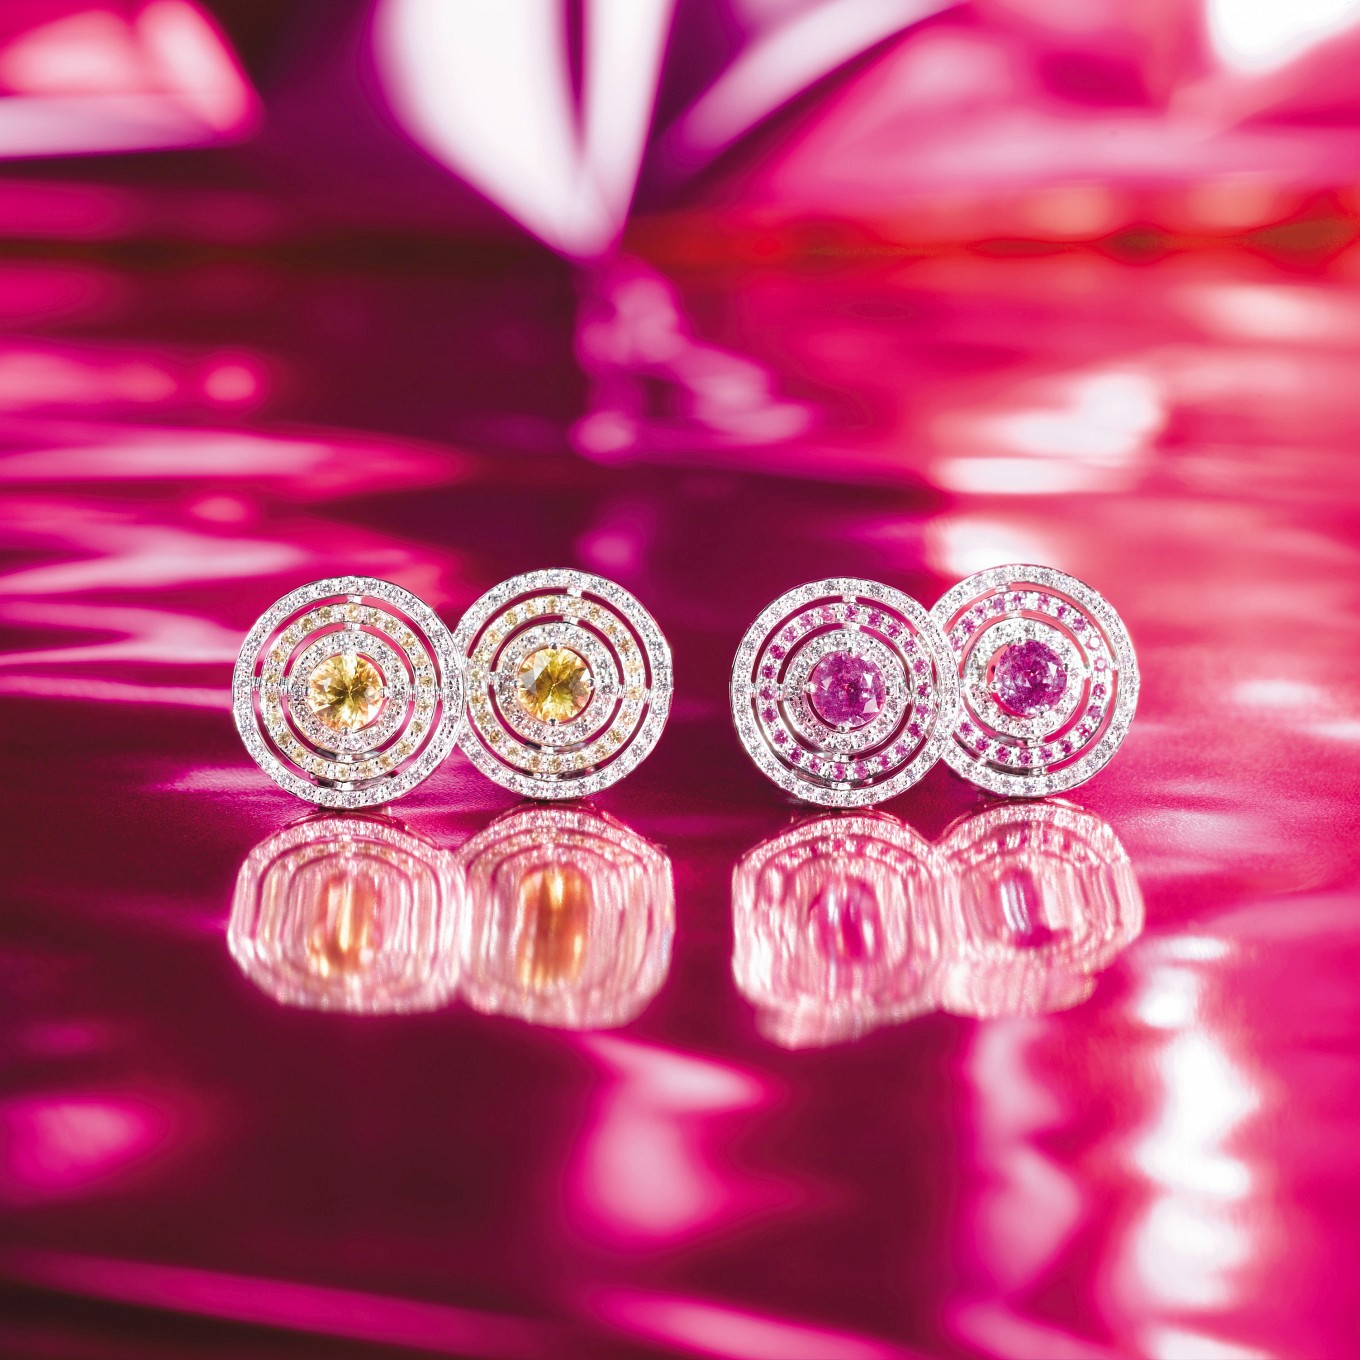 YELLOW SAPPHIRE & DIAMOND 'CIRCLE' EARRINGS. PINK SAPPHIRE & DIAMOND 'CIRCLE' EARRINGS